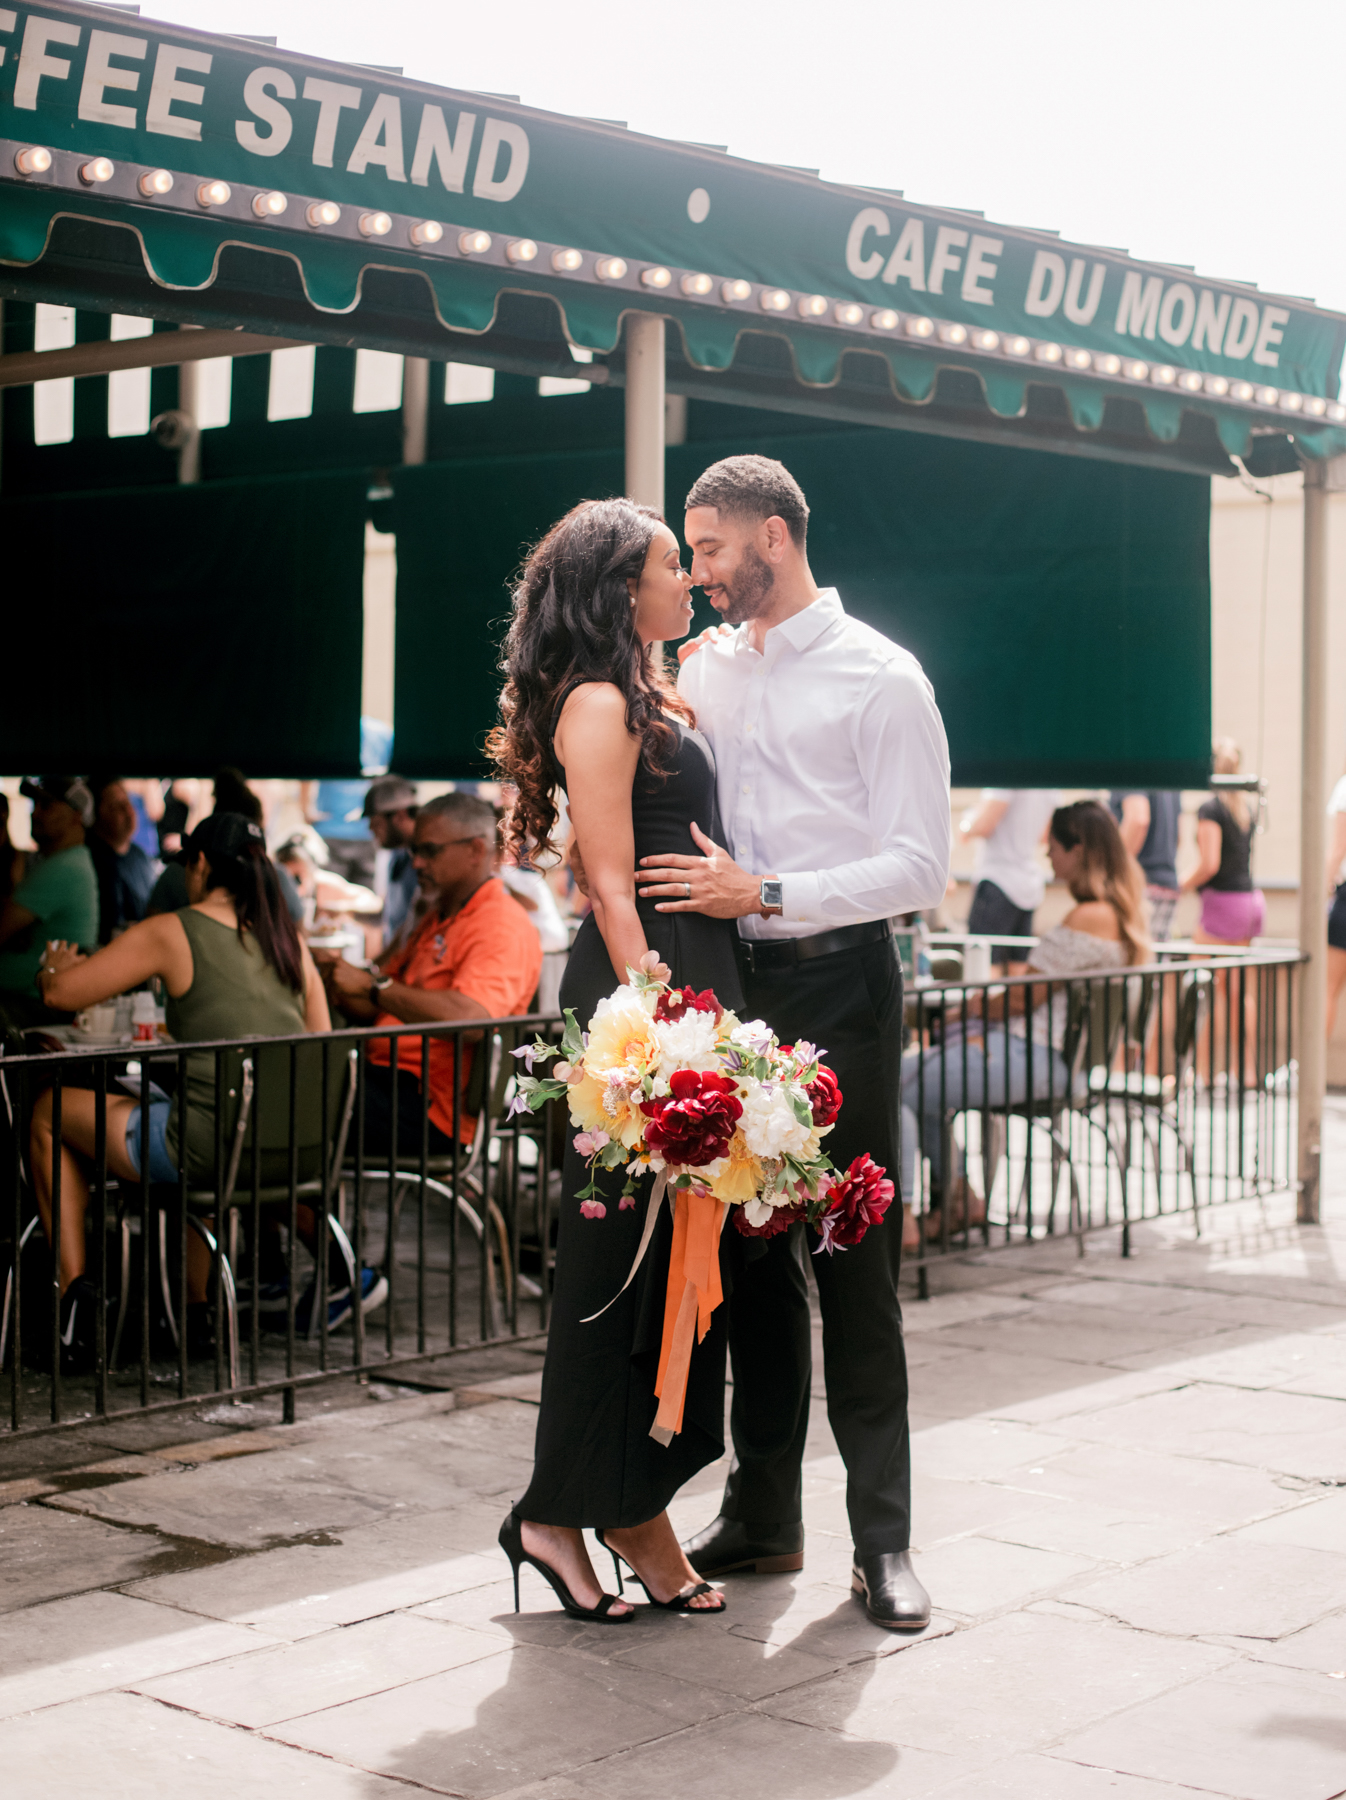 Entrepreneur and lifestyle blogger Britt Fusilier and husband Dwight are celebrating the anniversary of their meeting in the Historic French Quarter years prior.